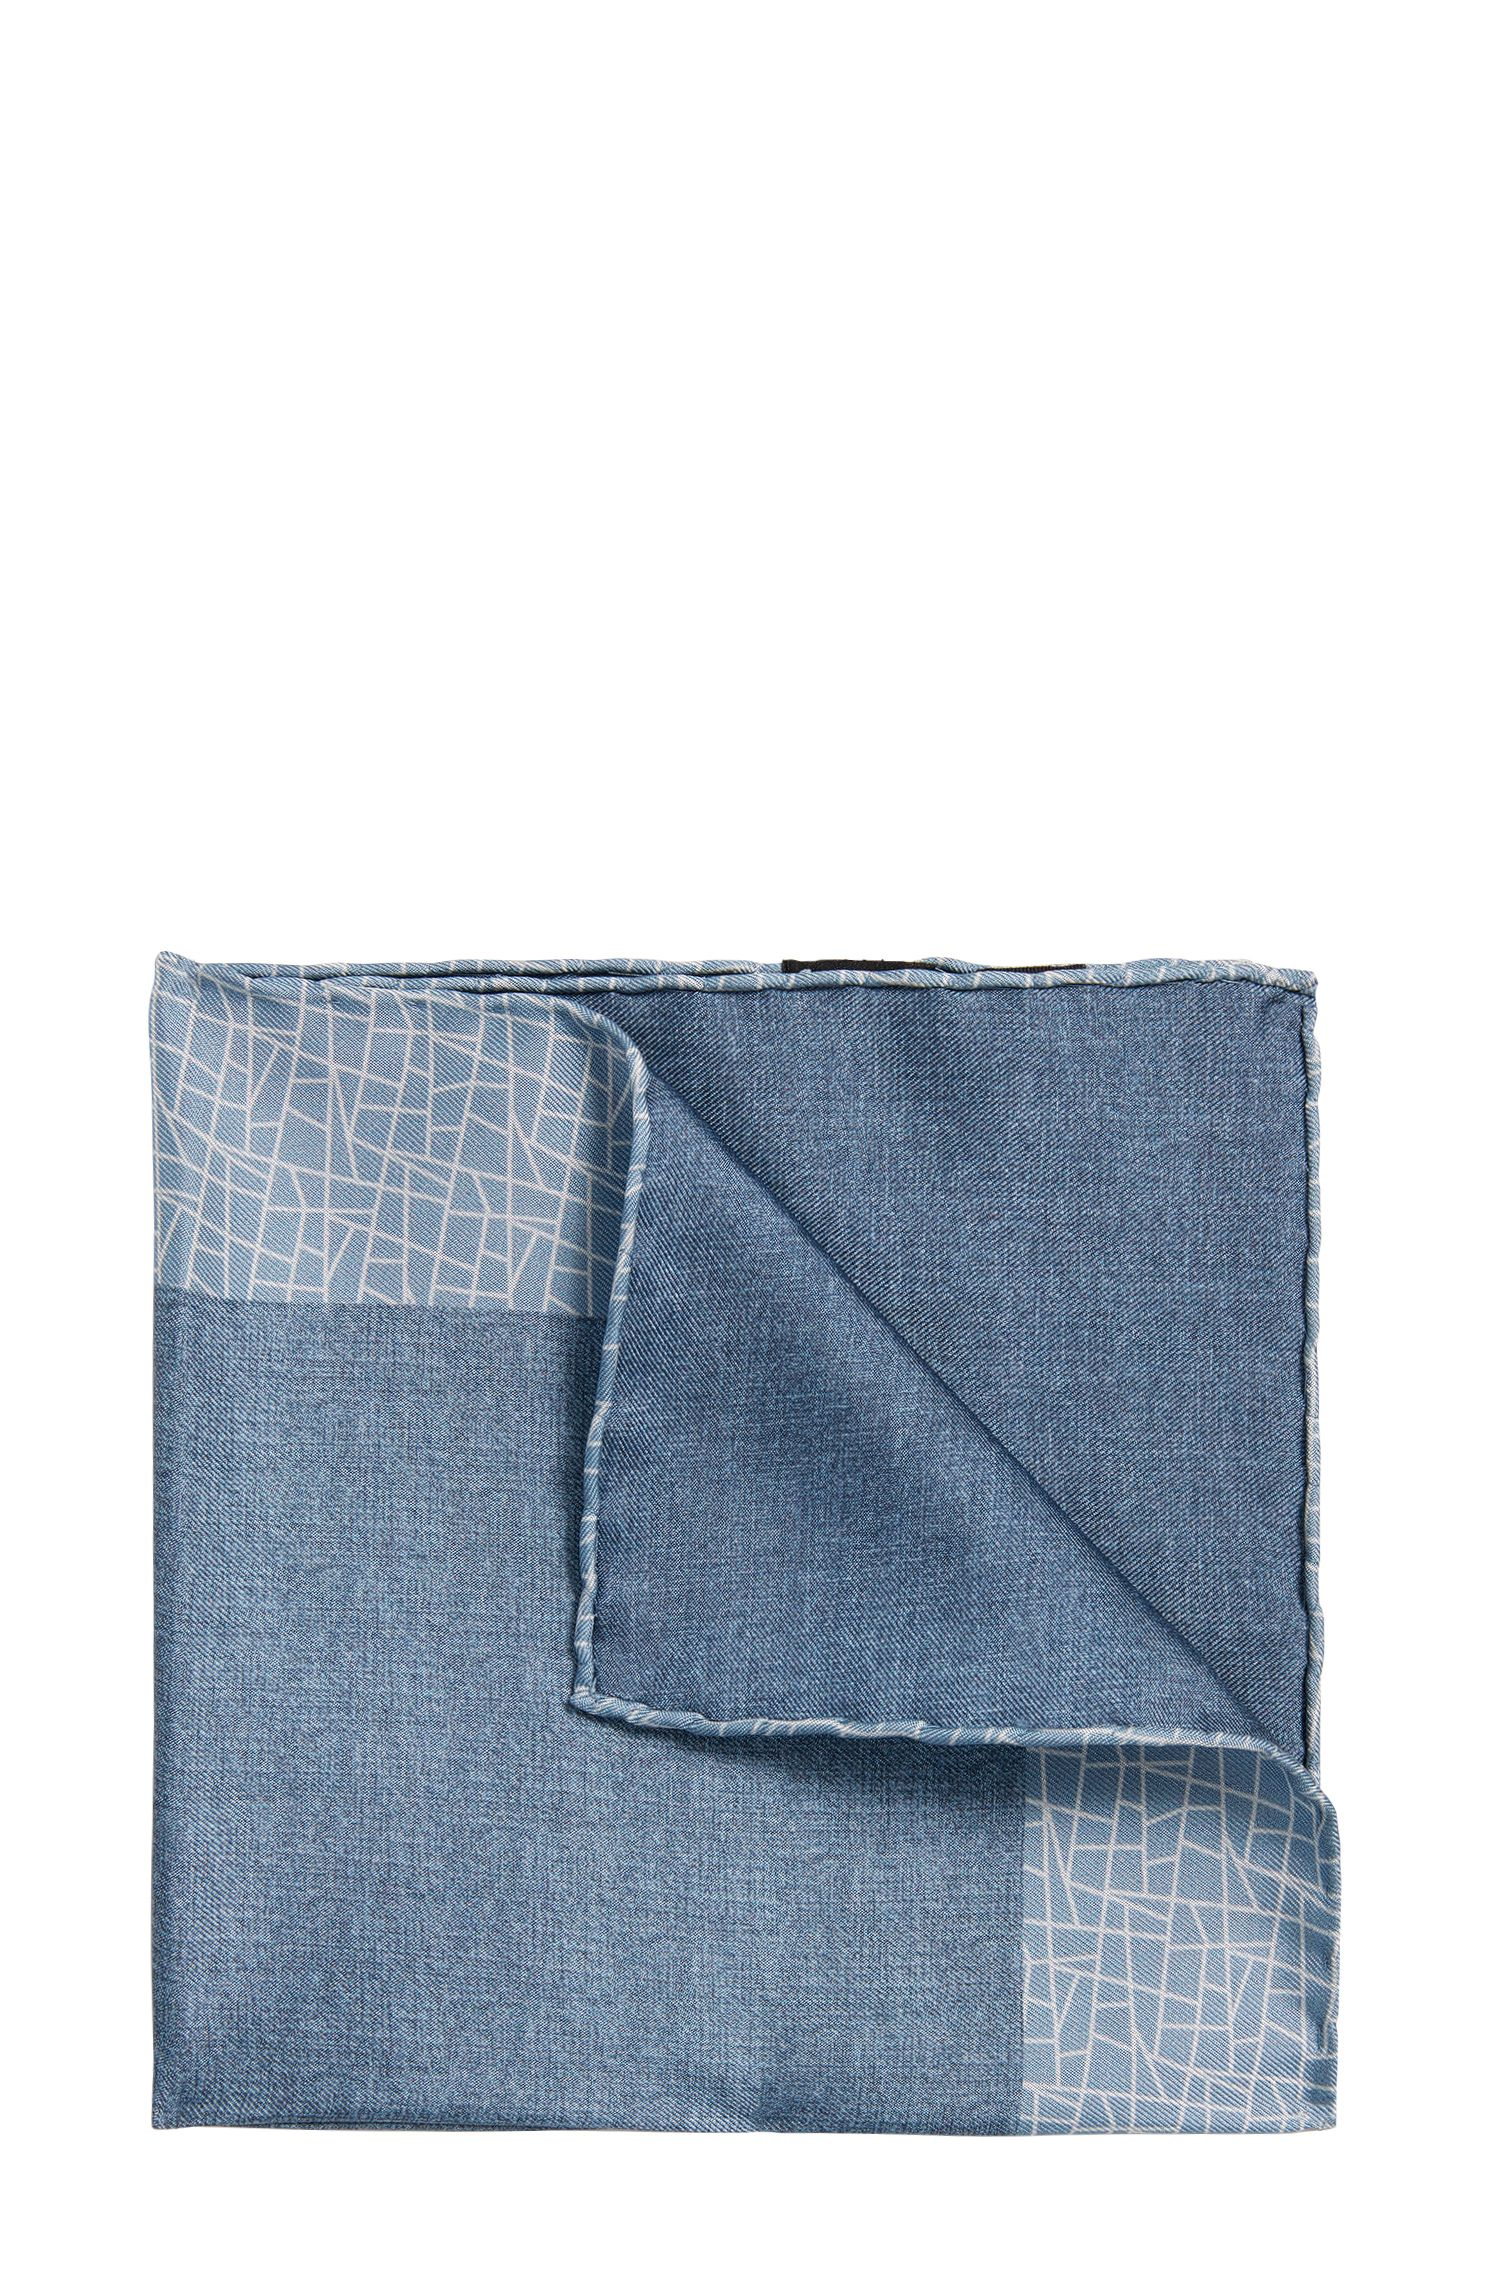 Tailored Einstecktuch aus Seide im Muster-Mix: 'T-Pocket sq. cm33x33'